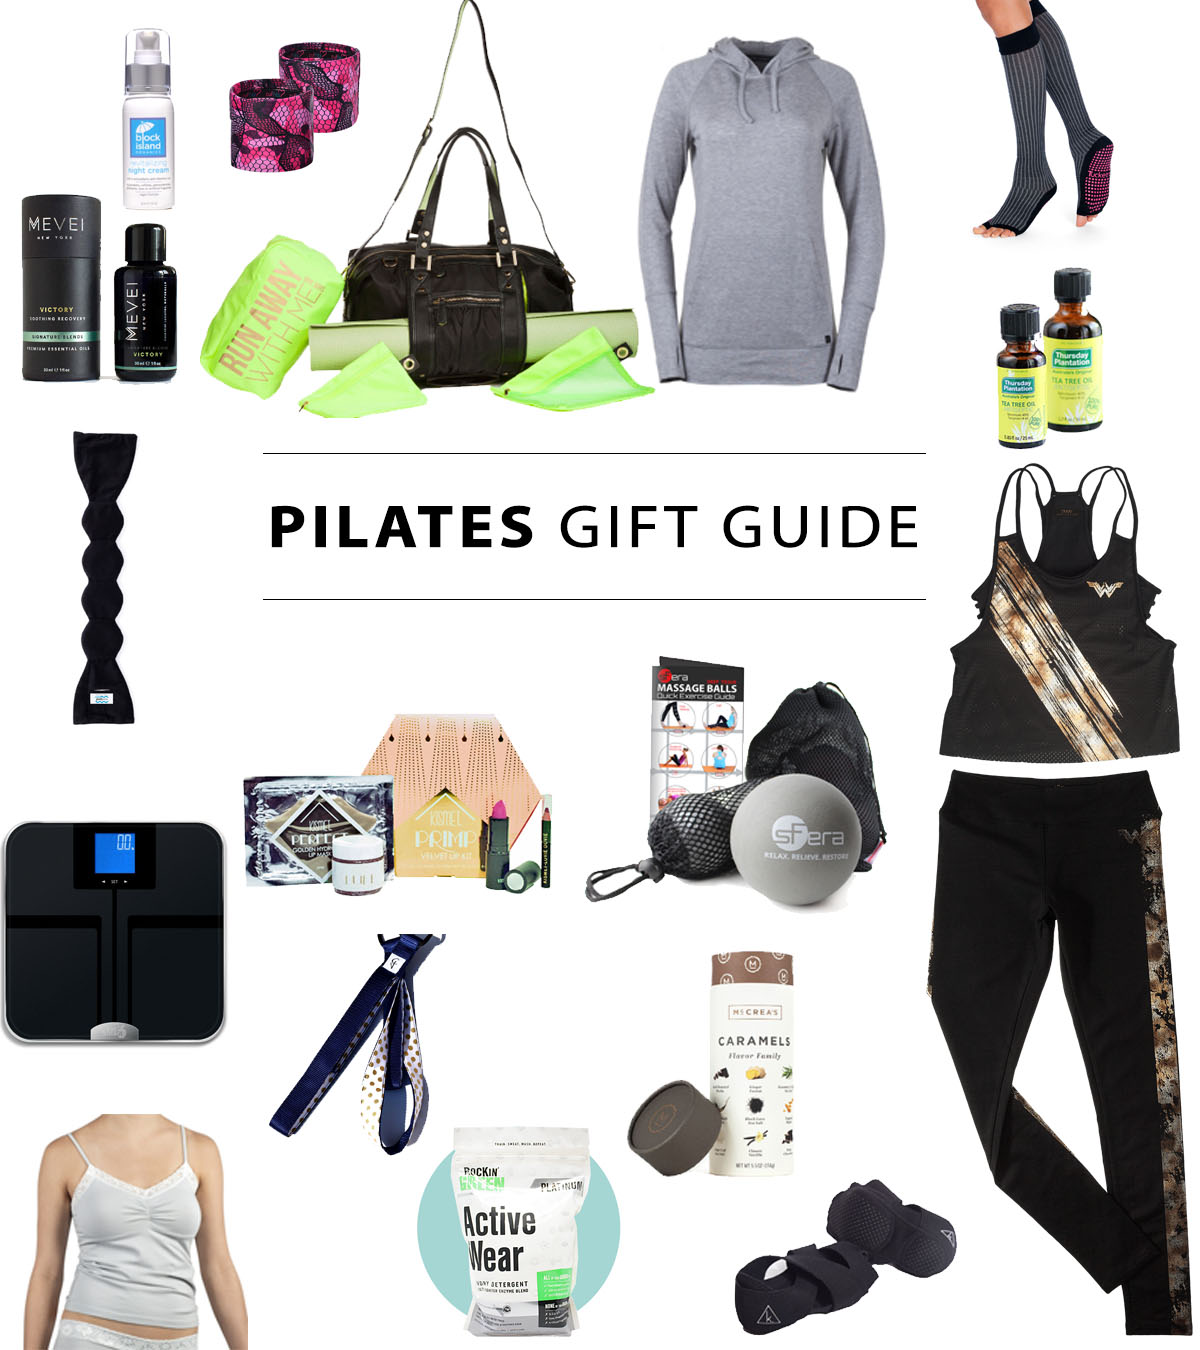 Pilates Gift Guide and Giveaway 2017 - Pilates Bridge